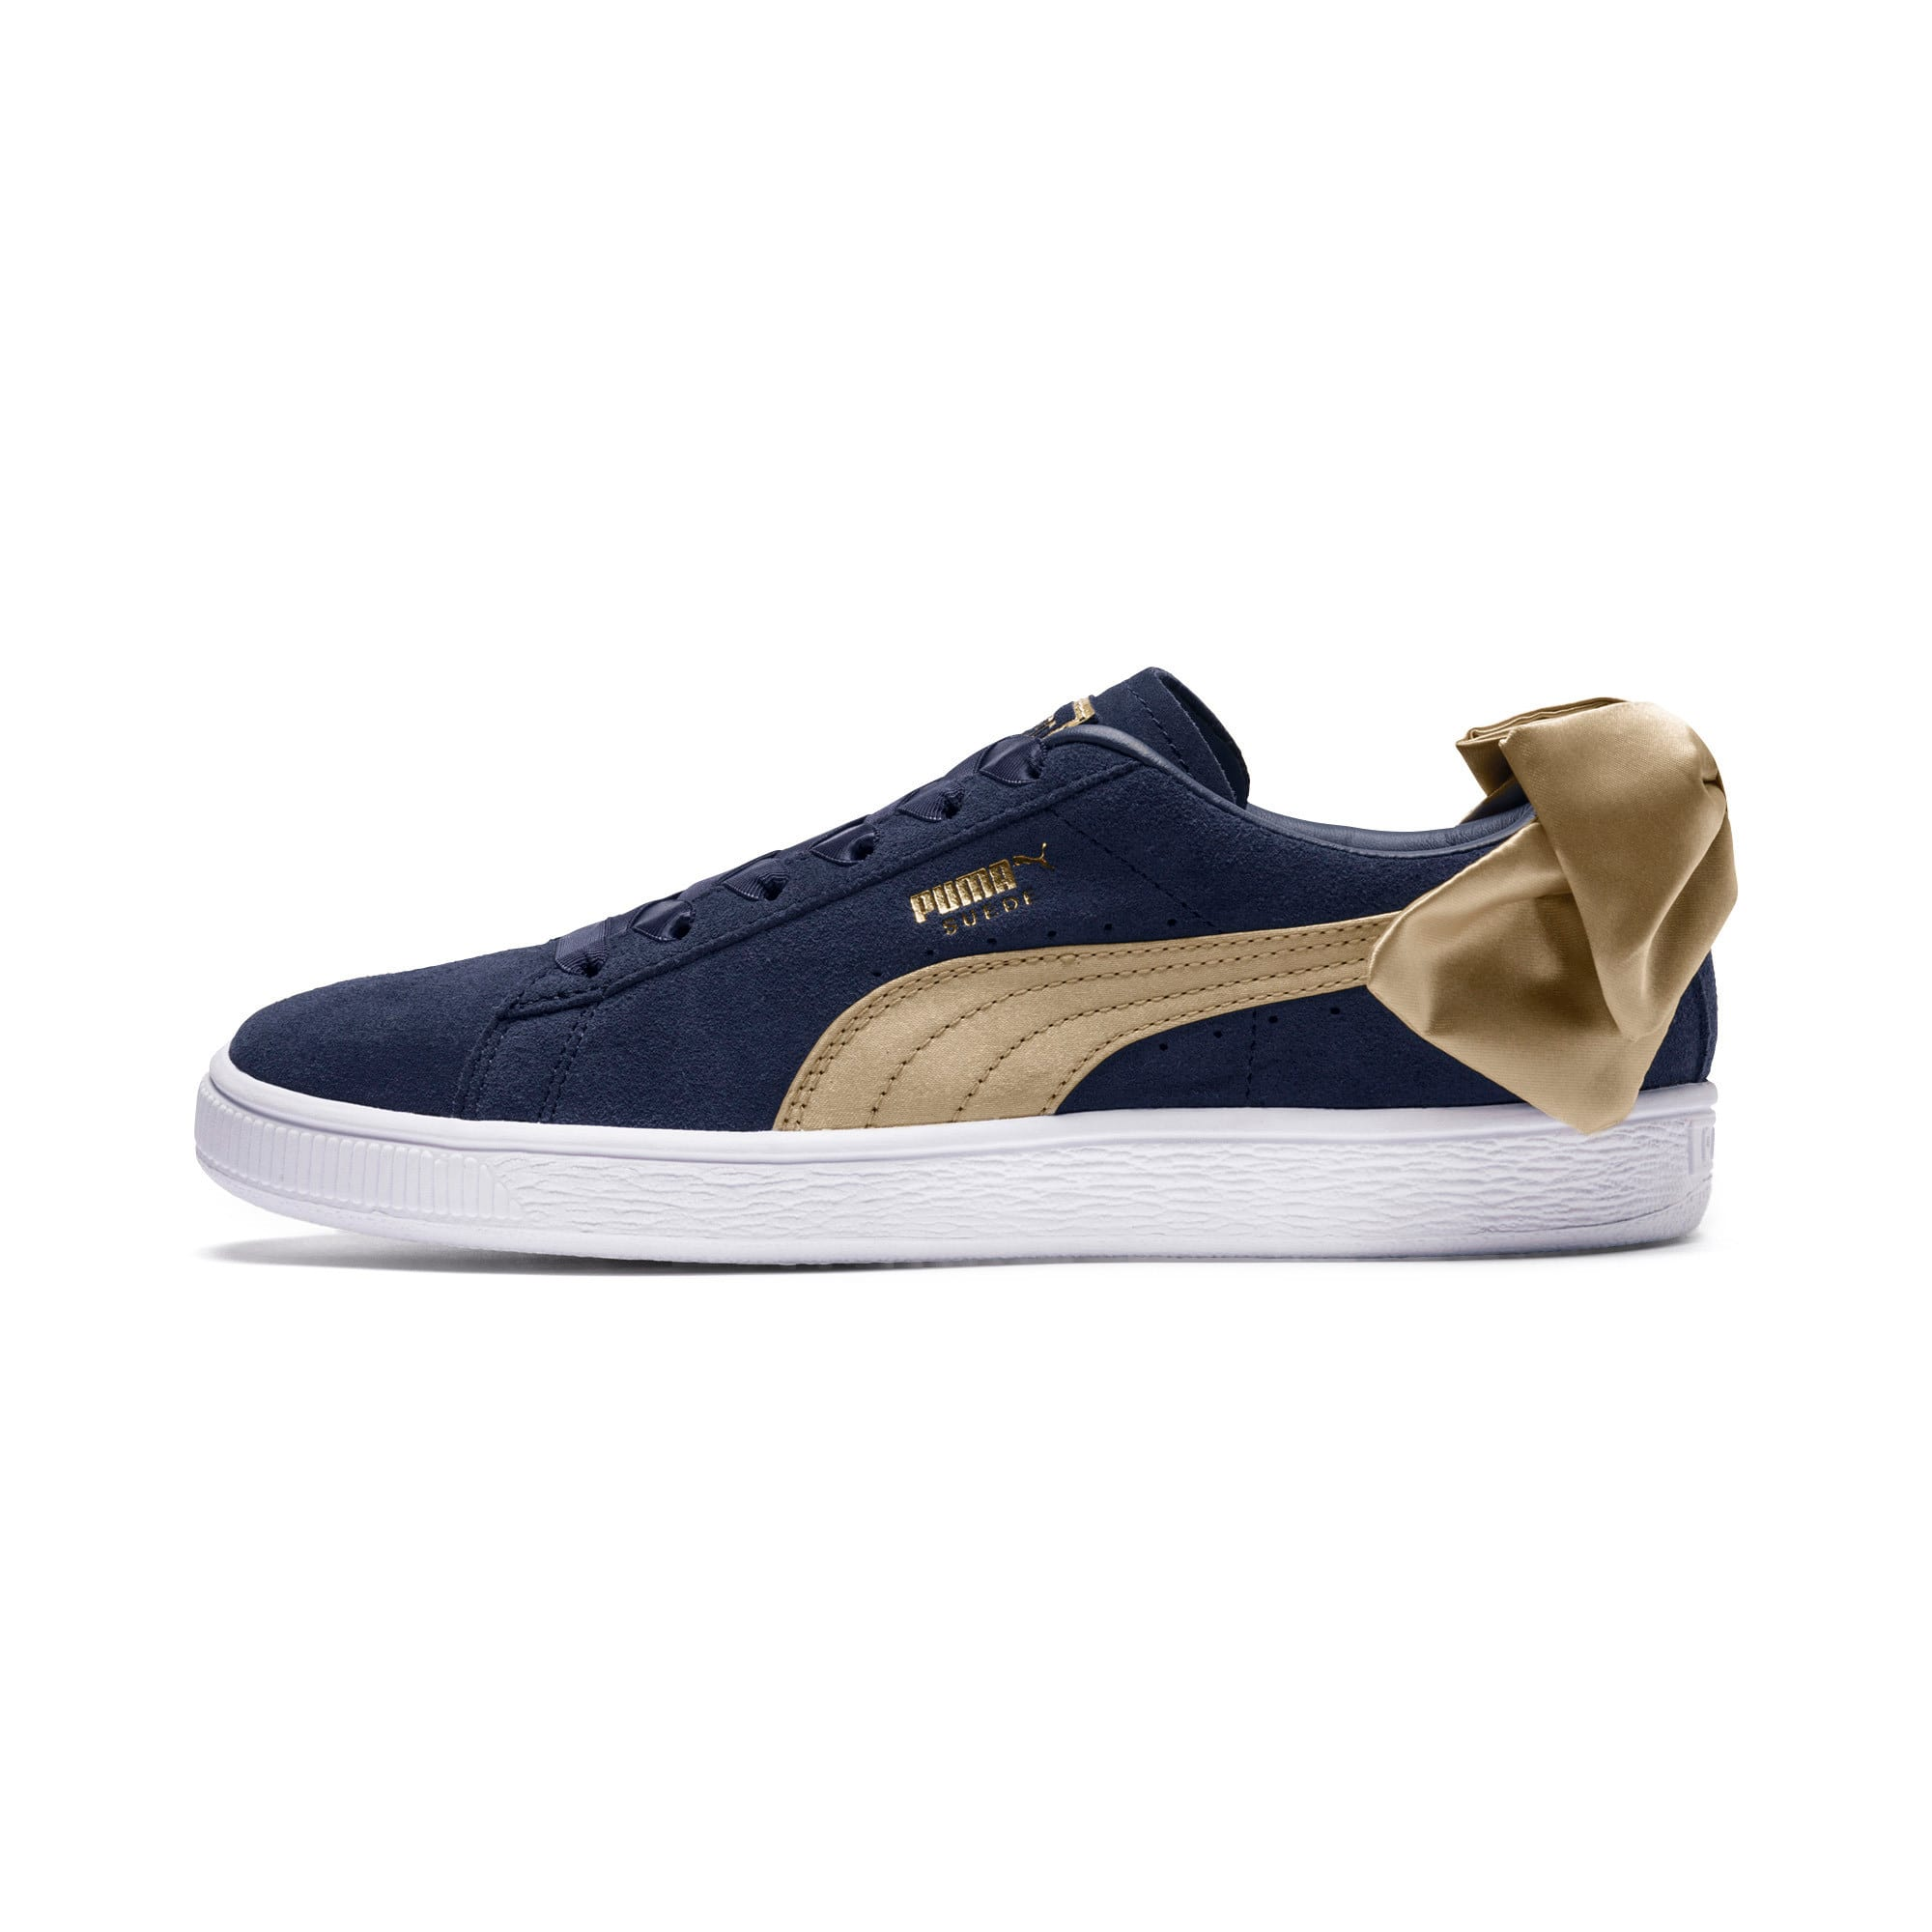 Thumbnail 1 of Suede Bow Varsity Women's Trainers, Peacoat-Metallic Gold, medium-IND